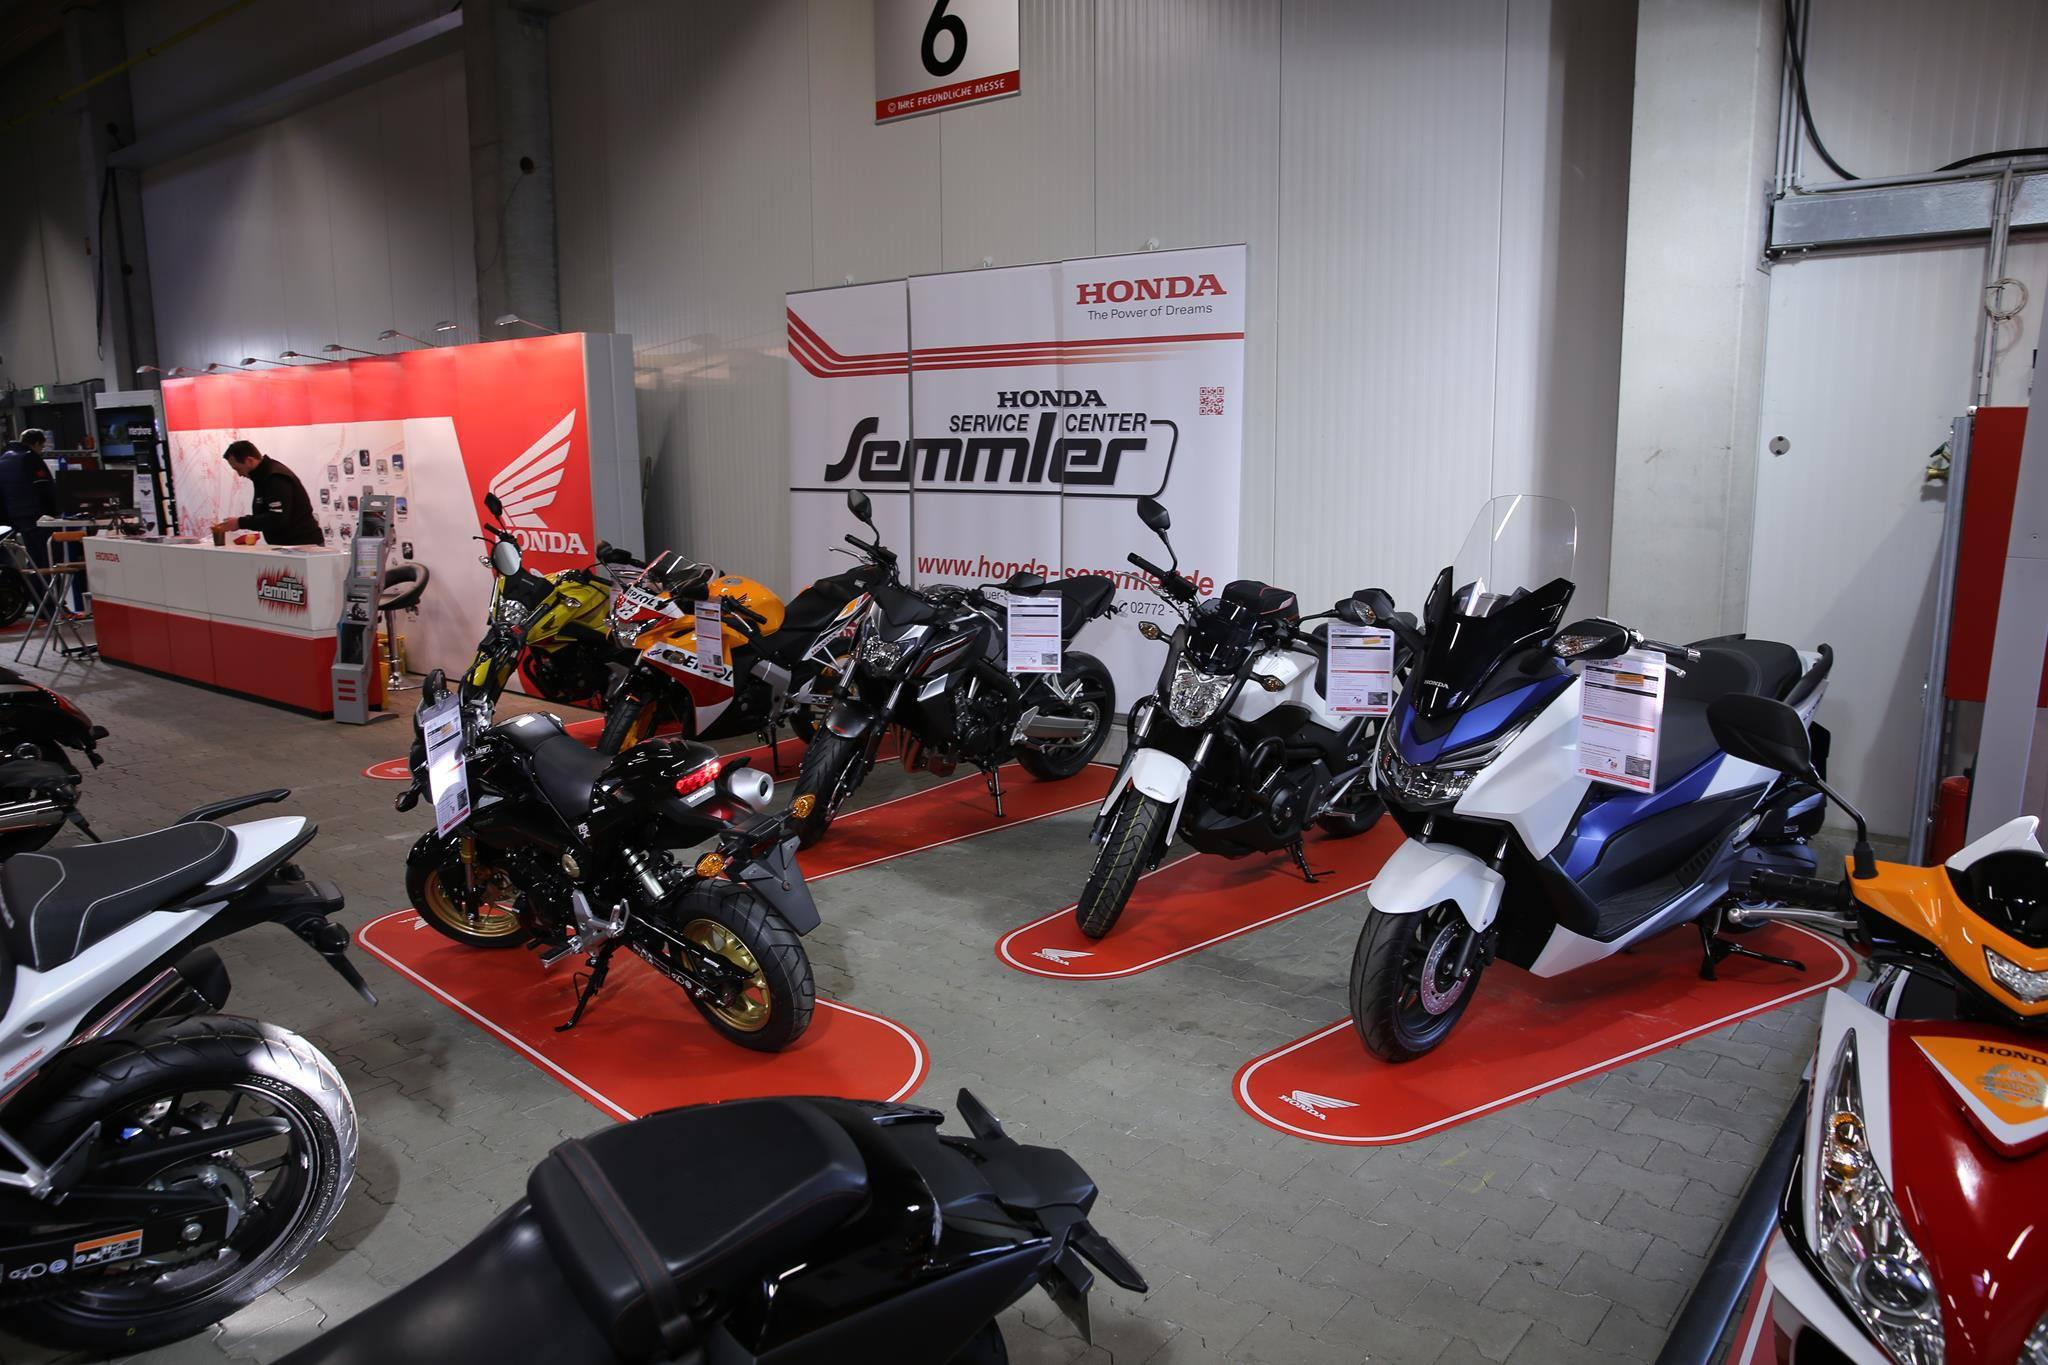 honda semmler messe gie en 1 tag 2015 motorrad fotos. Black Bedroom Furniture Sets. Home Design Ideas